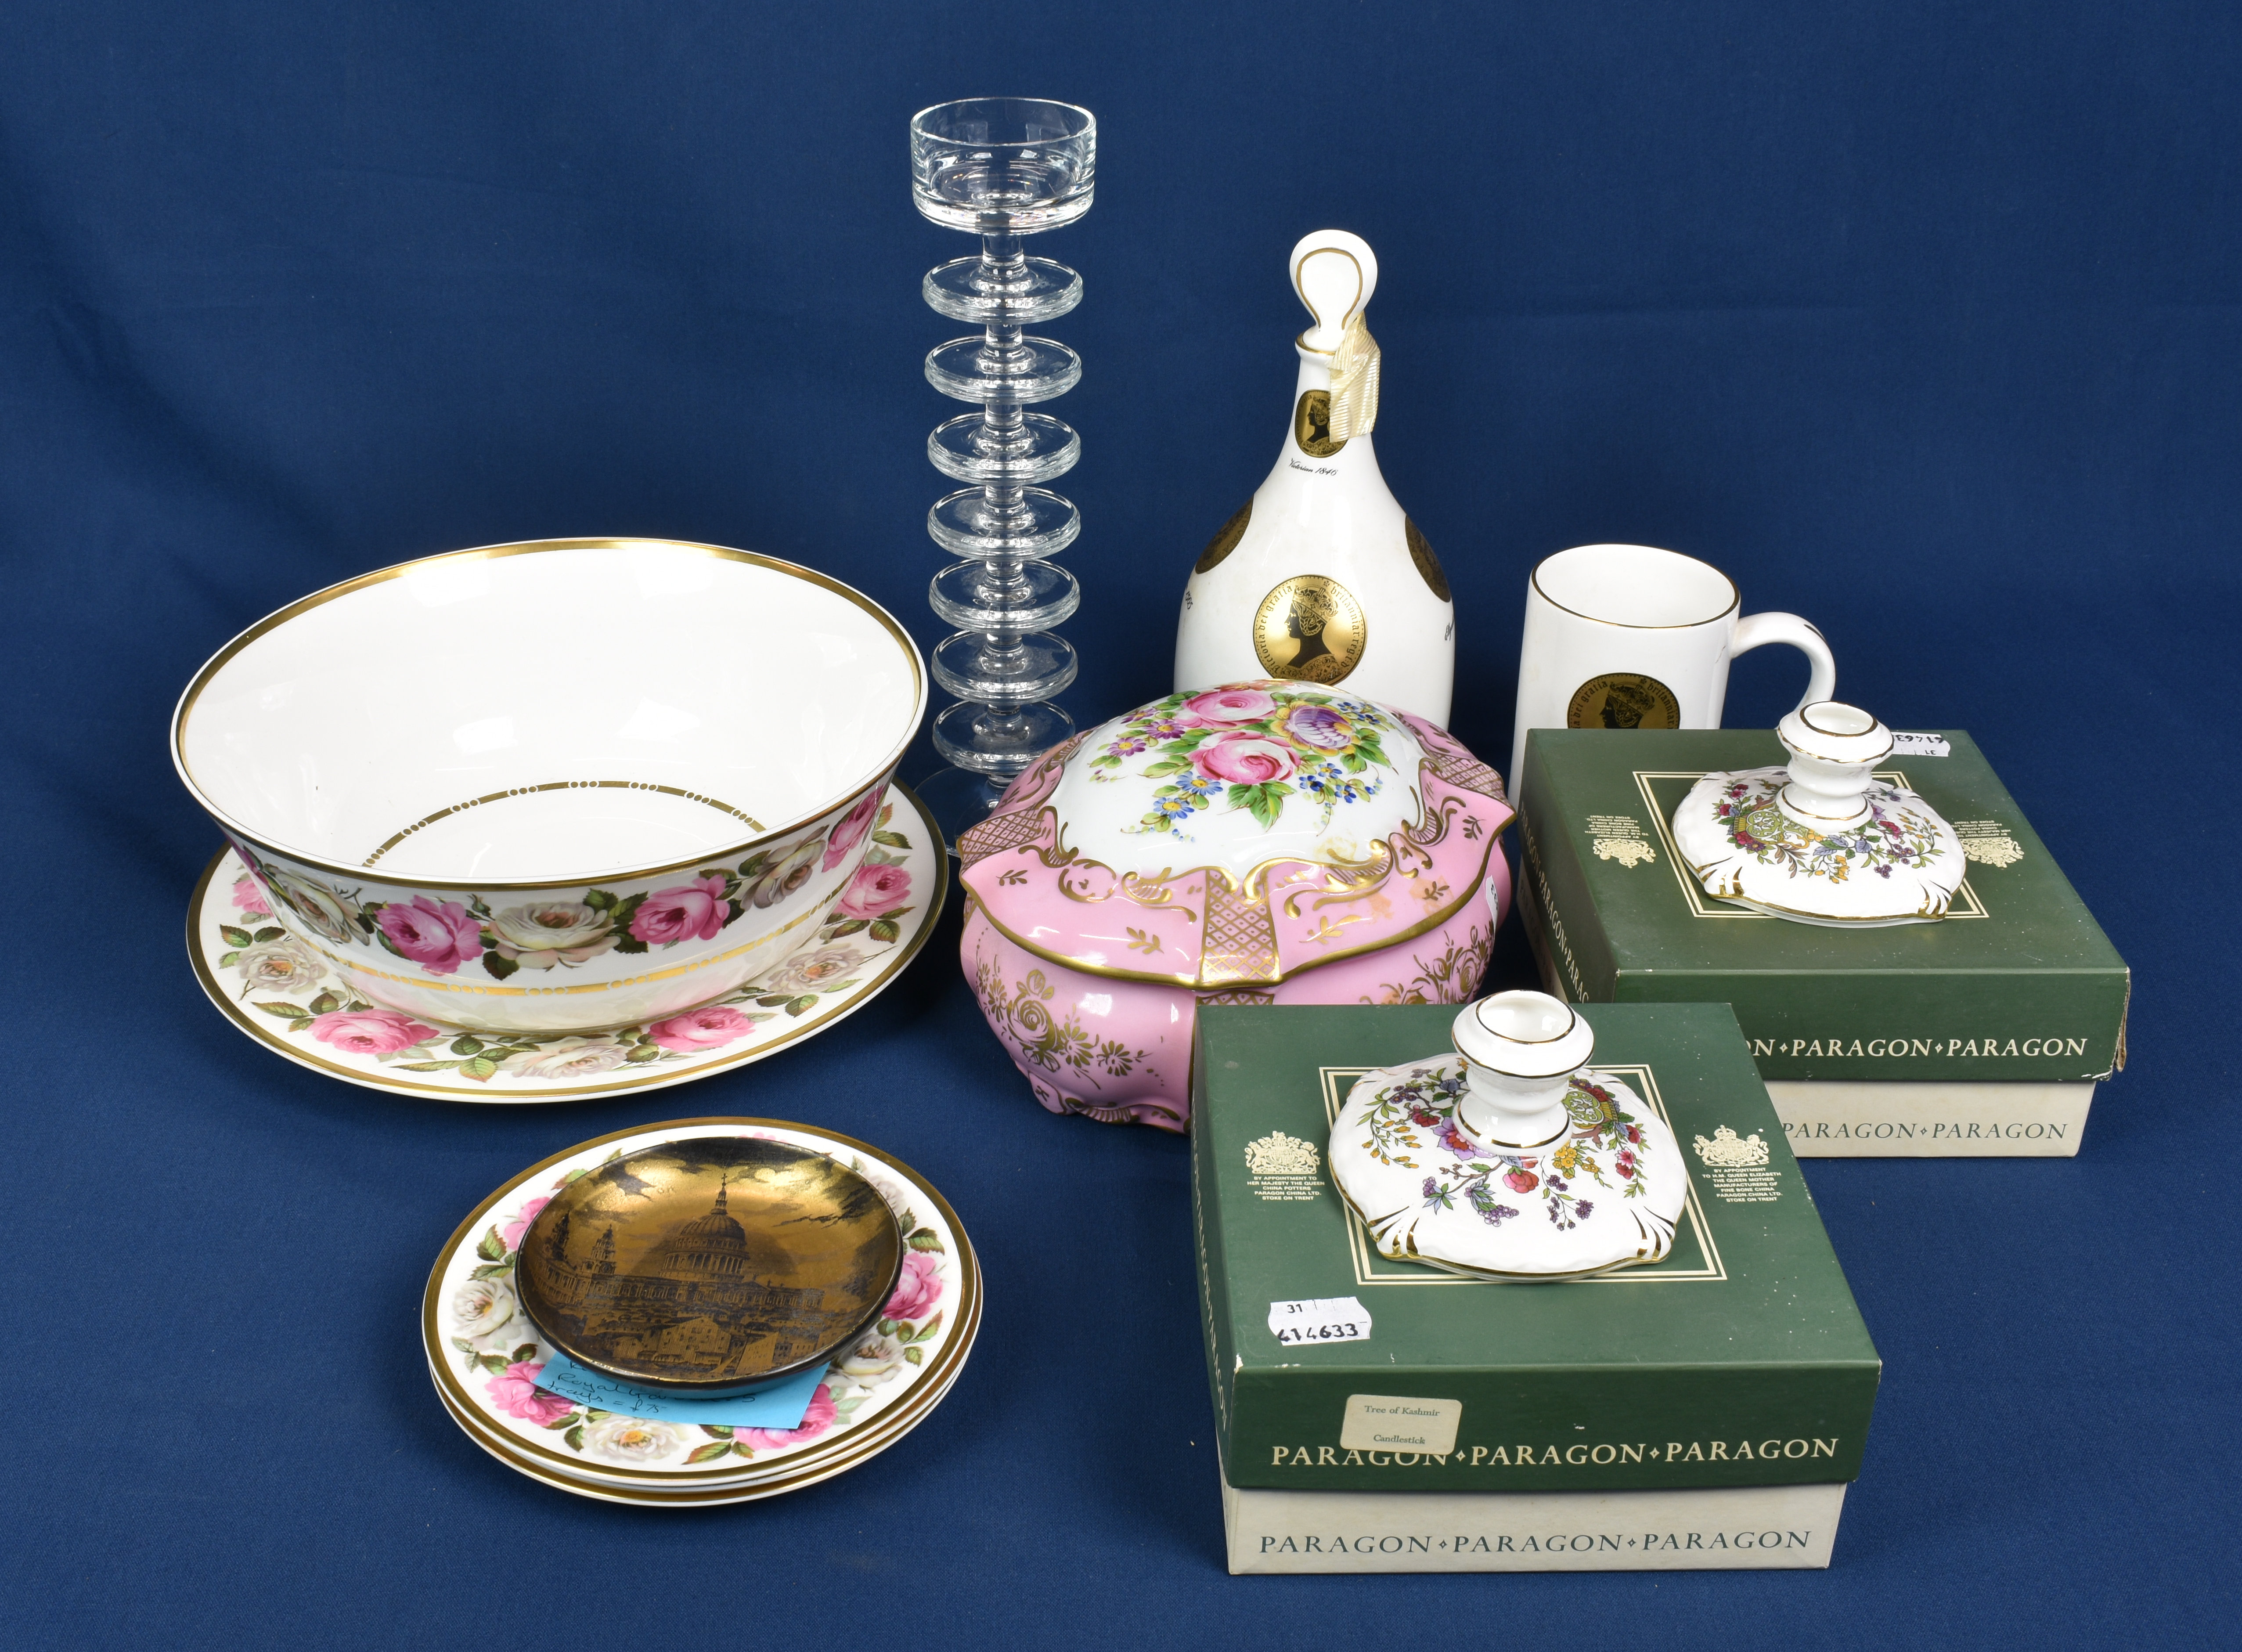 Lot 181 - A small collection to include Royal Worcester Royal Garden pattern plates and bowl, a Portmeirion